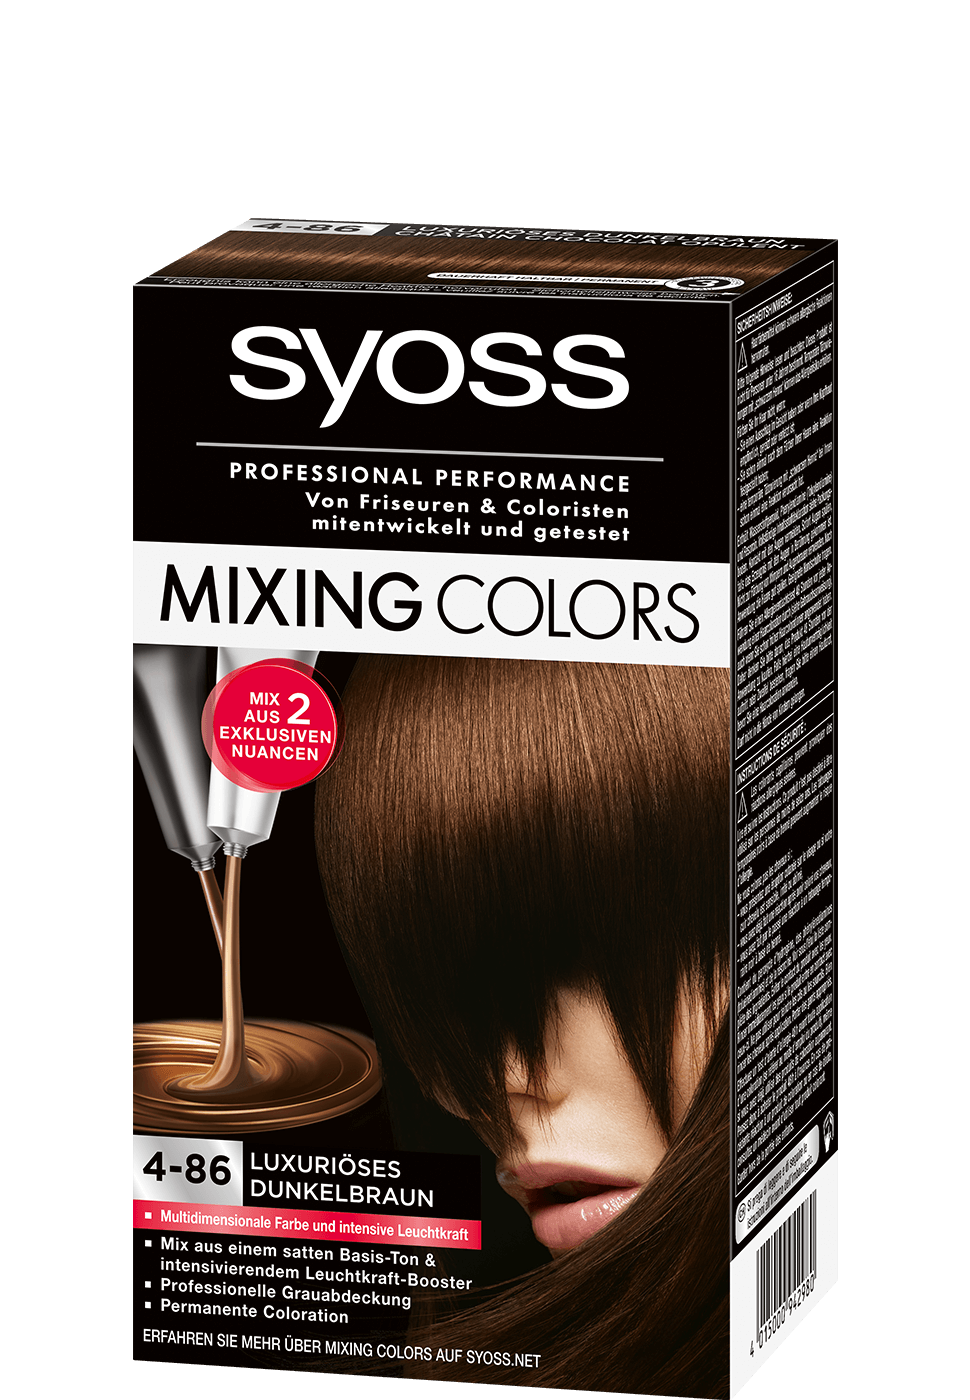 Syoss Mixing Colors 4-86 Luxuriöses Dunkelbraun